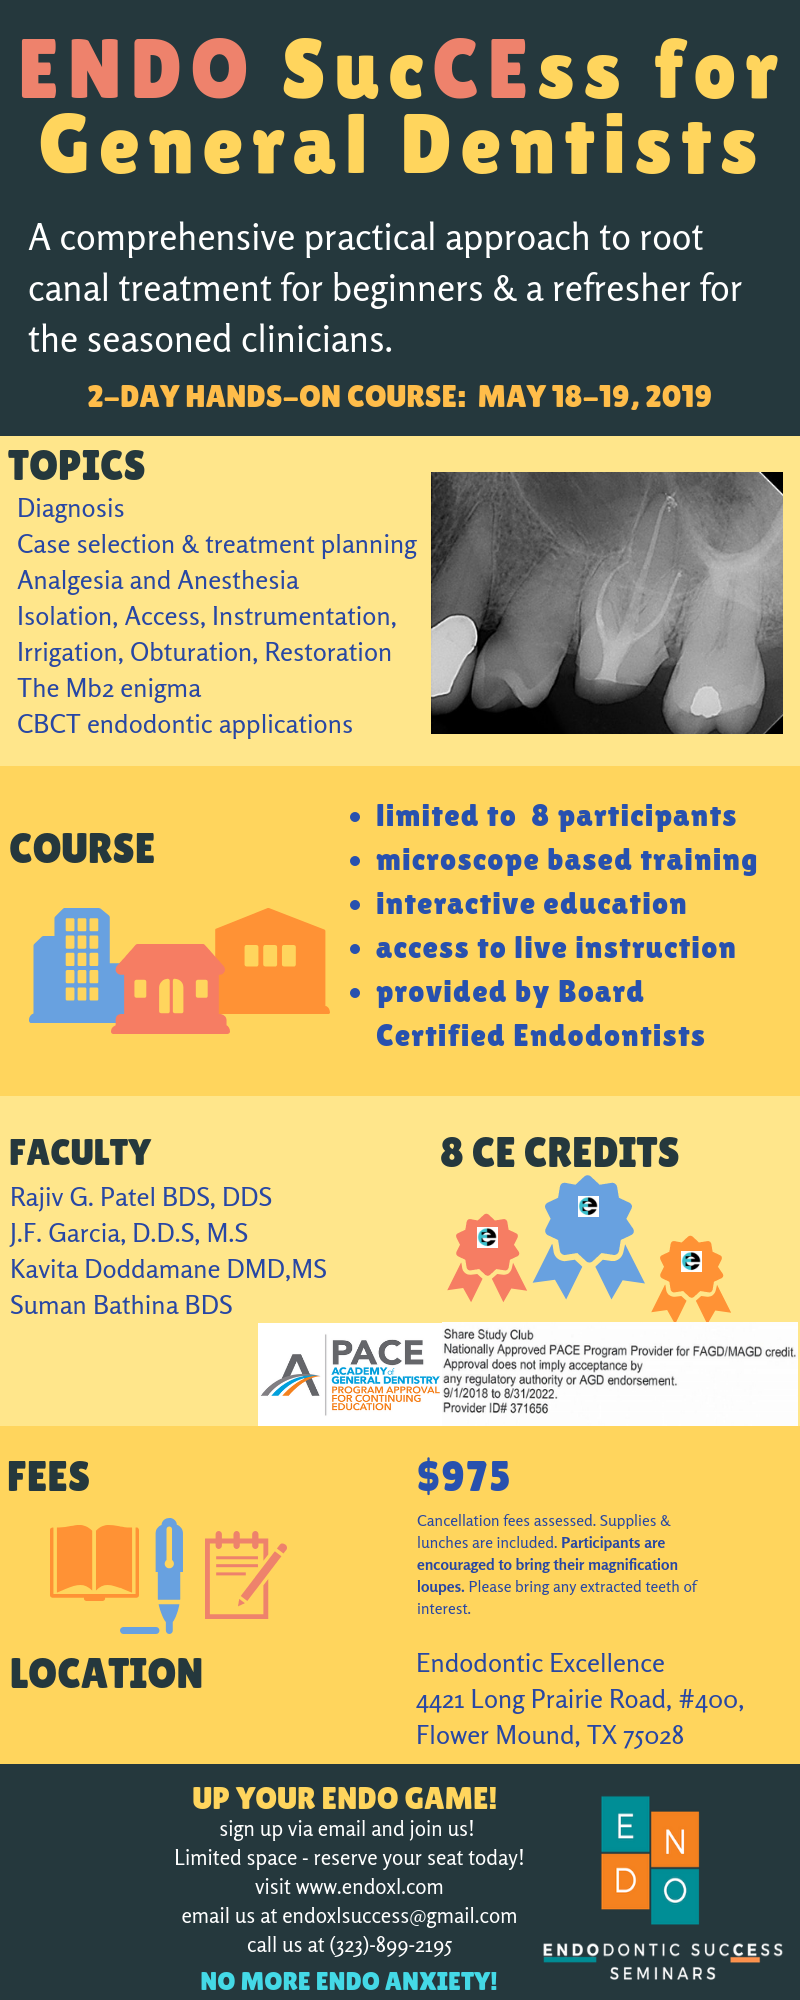 A comprehensive practical approach to root canal treatment (2)